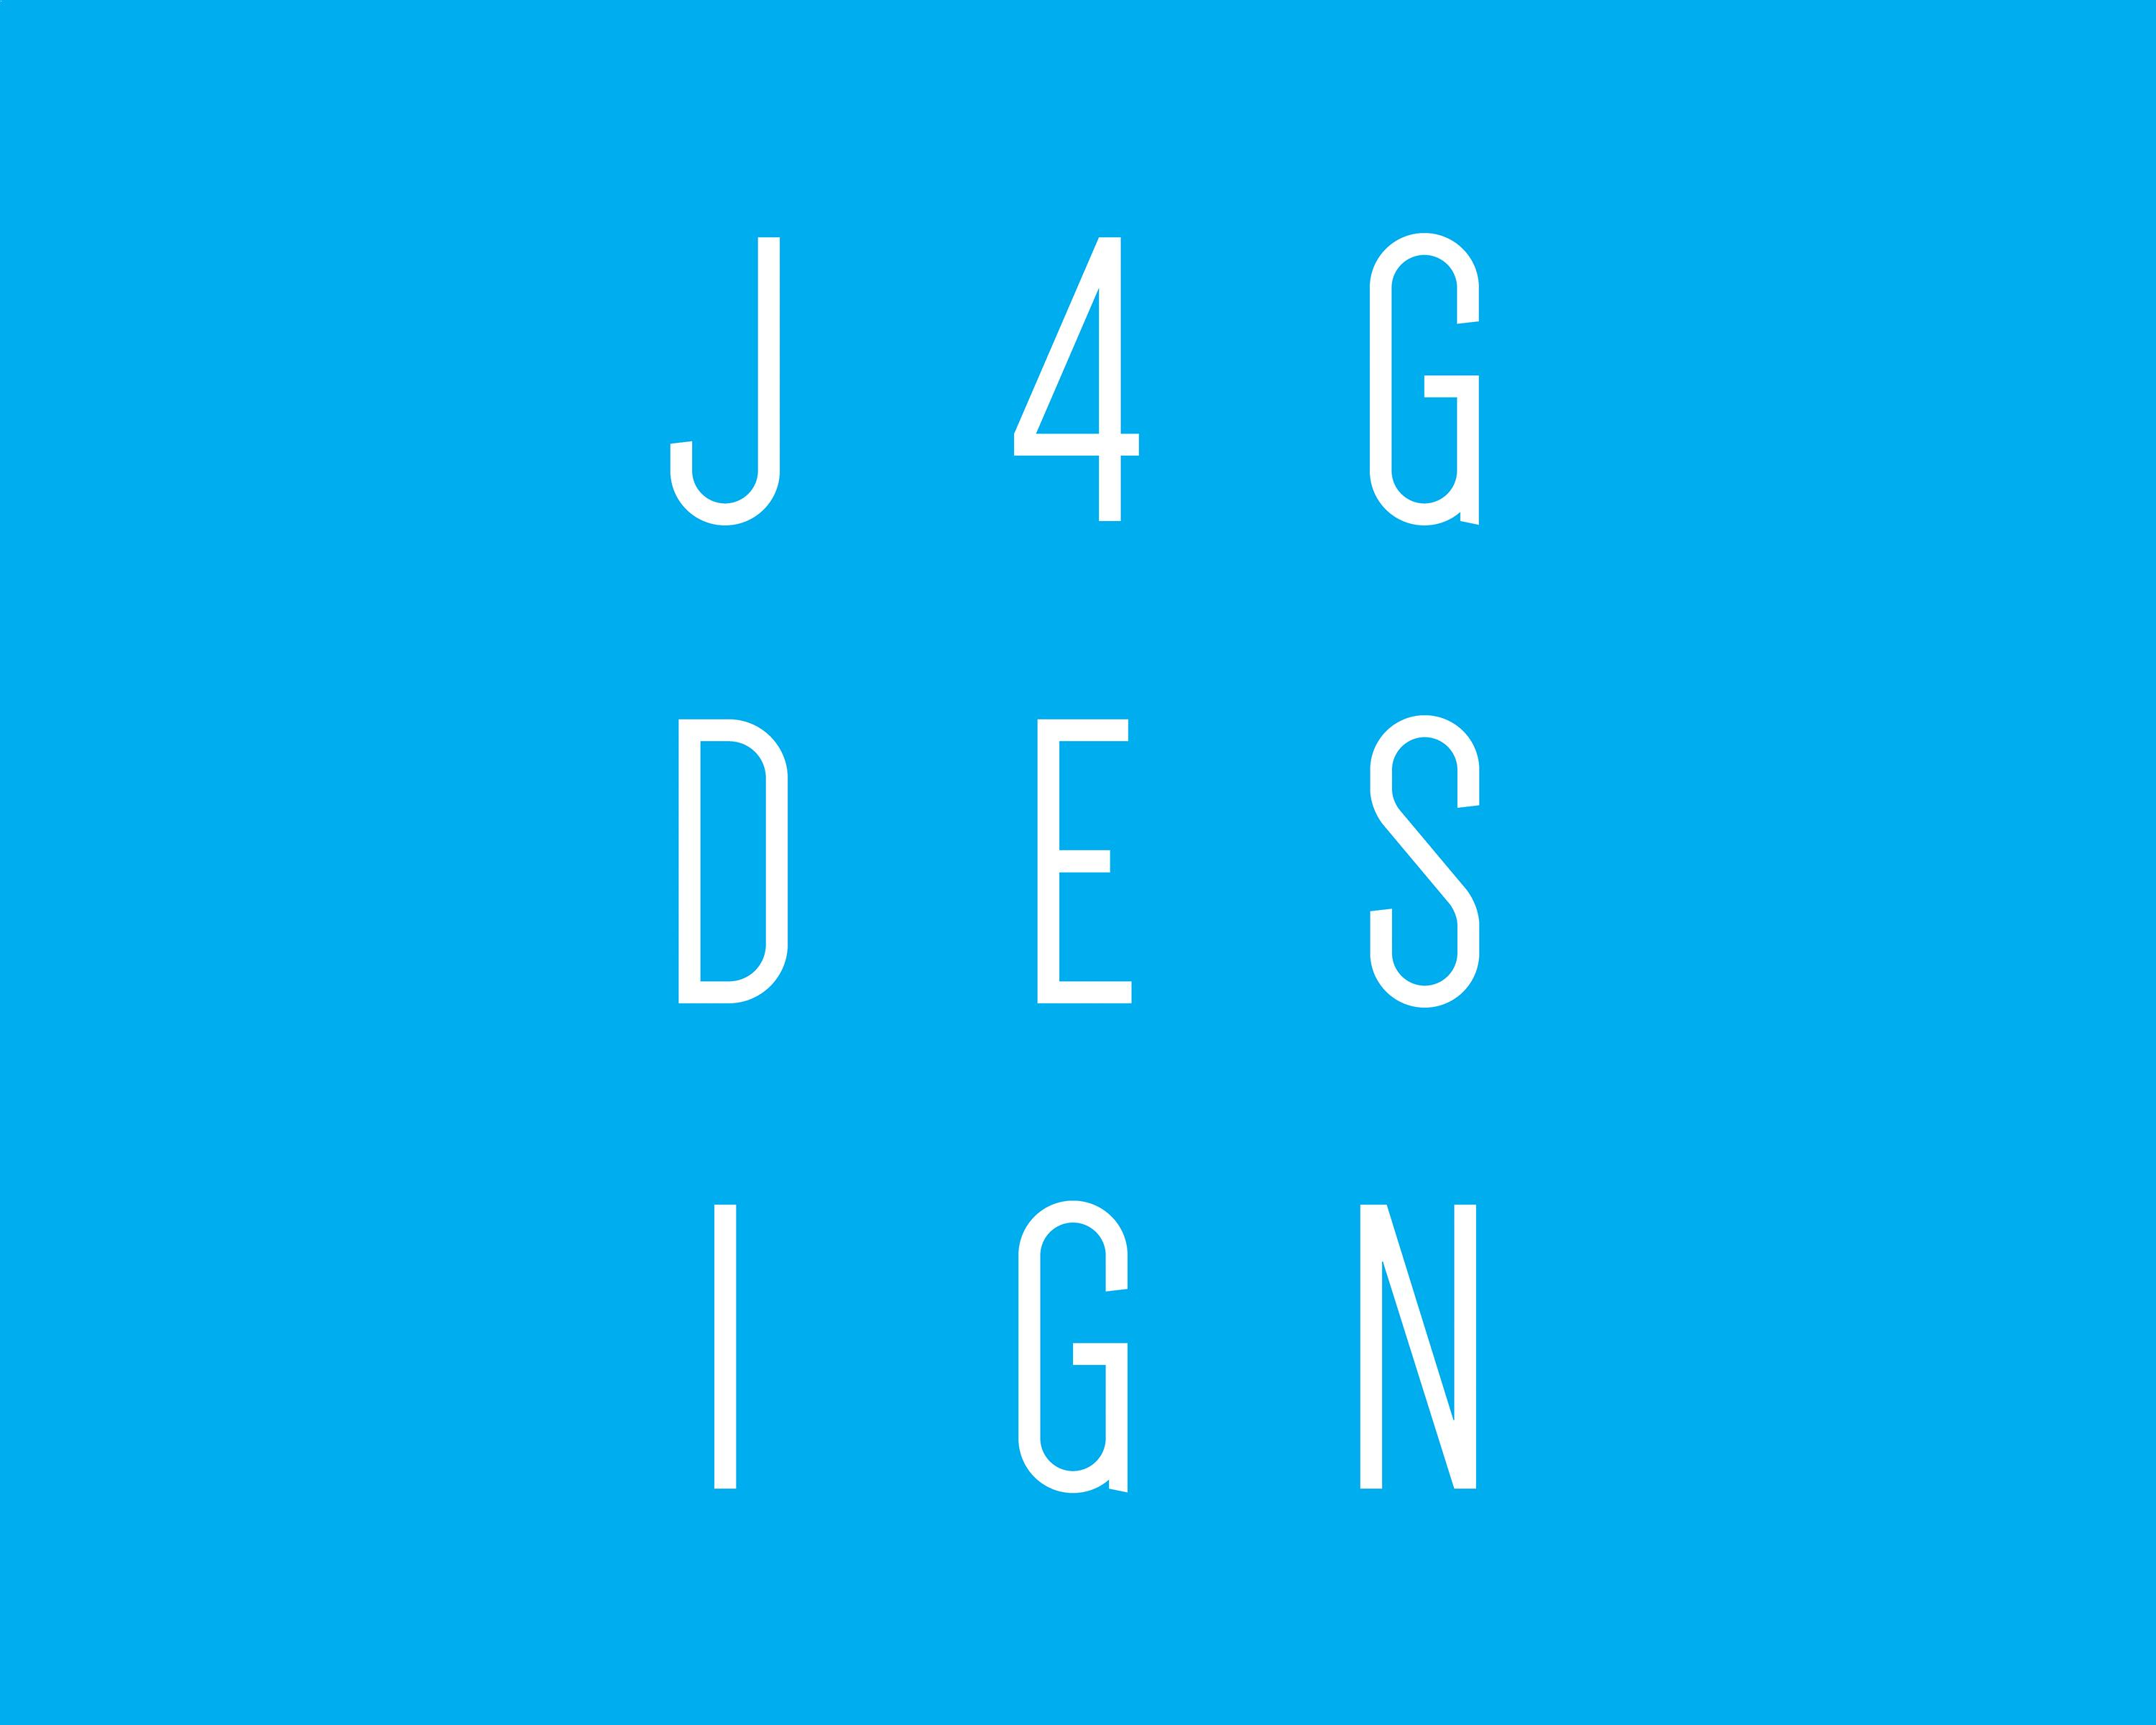 J4G Design logo: white capital wording on a blue background, three letters on each lines